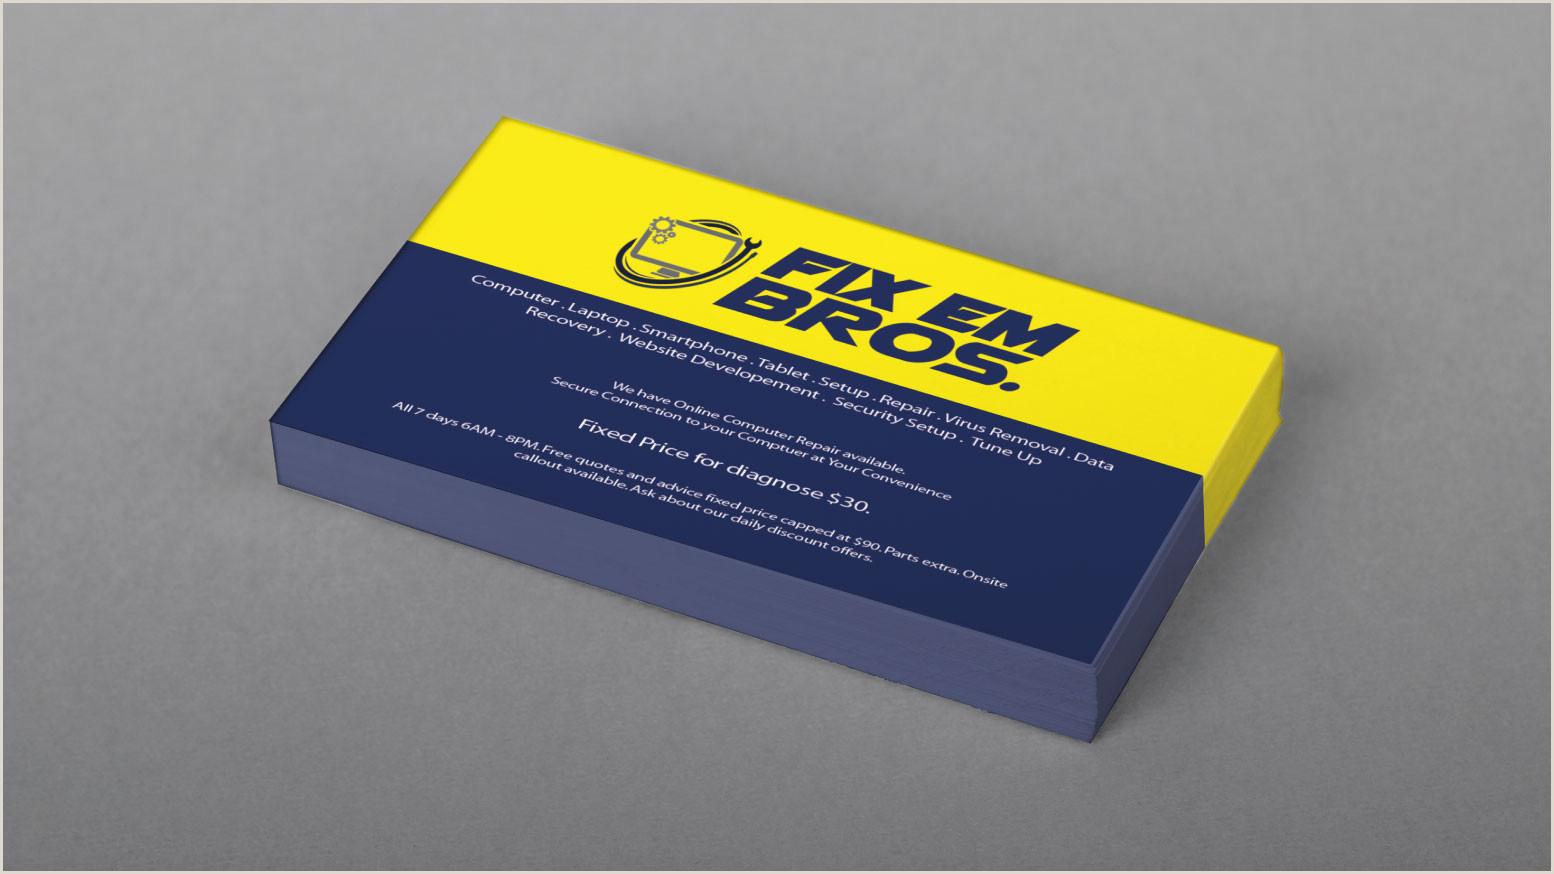 Bad Business Cards 4 Characteristics Of A Bad Business Card Design